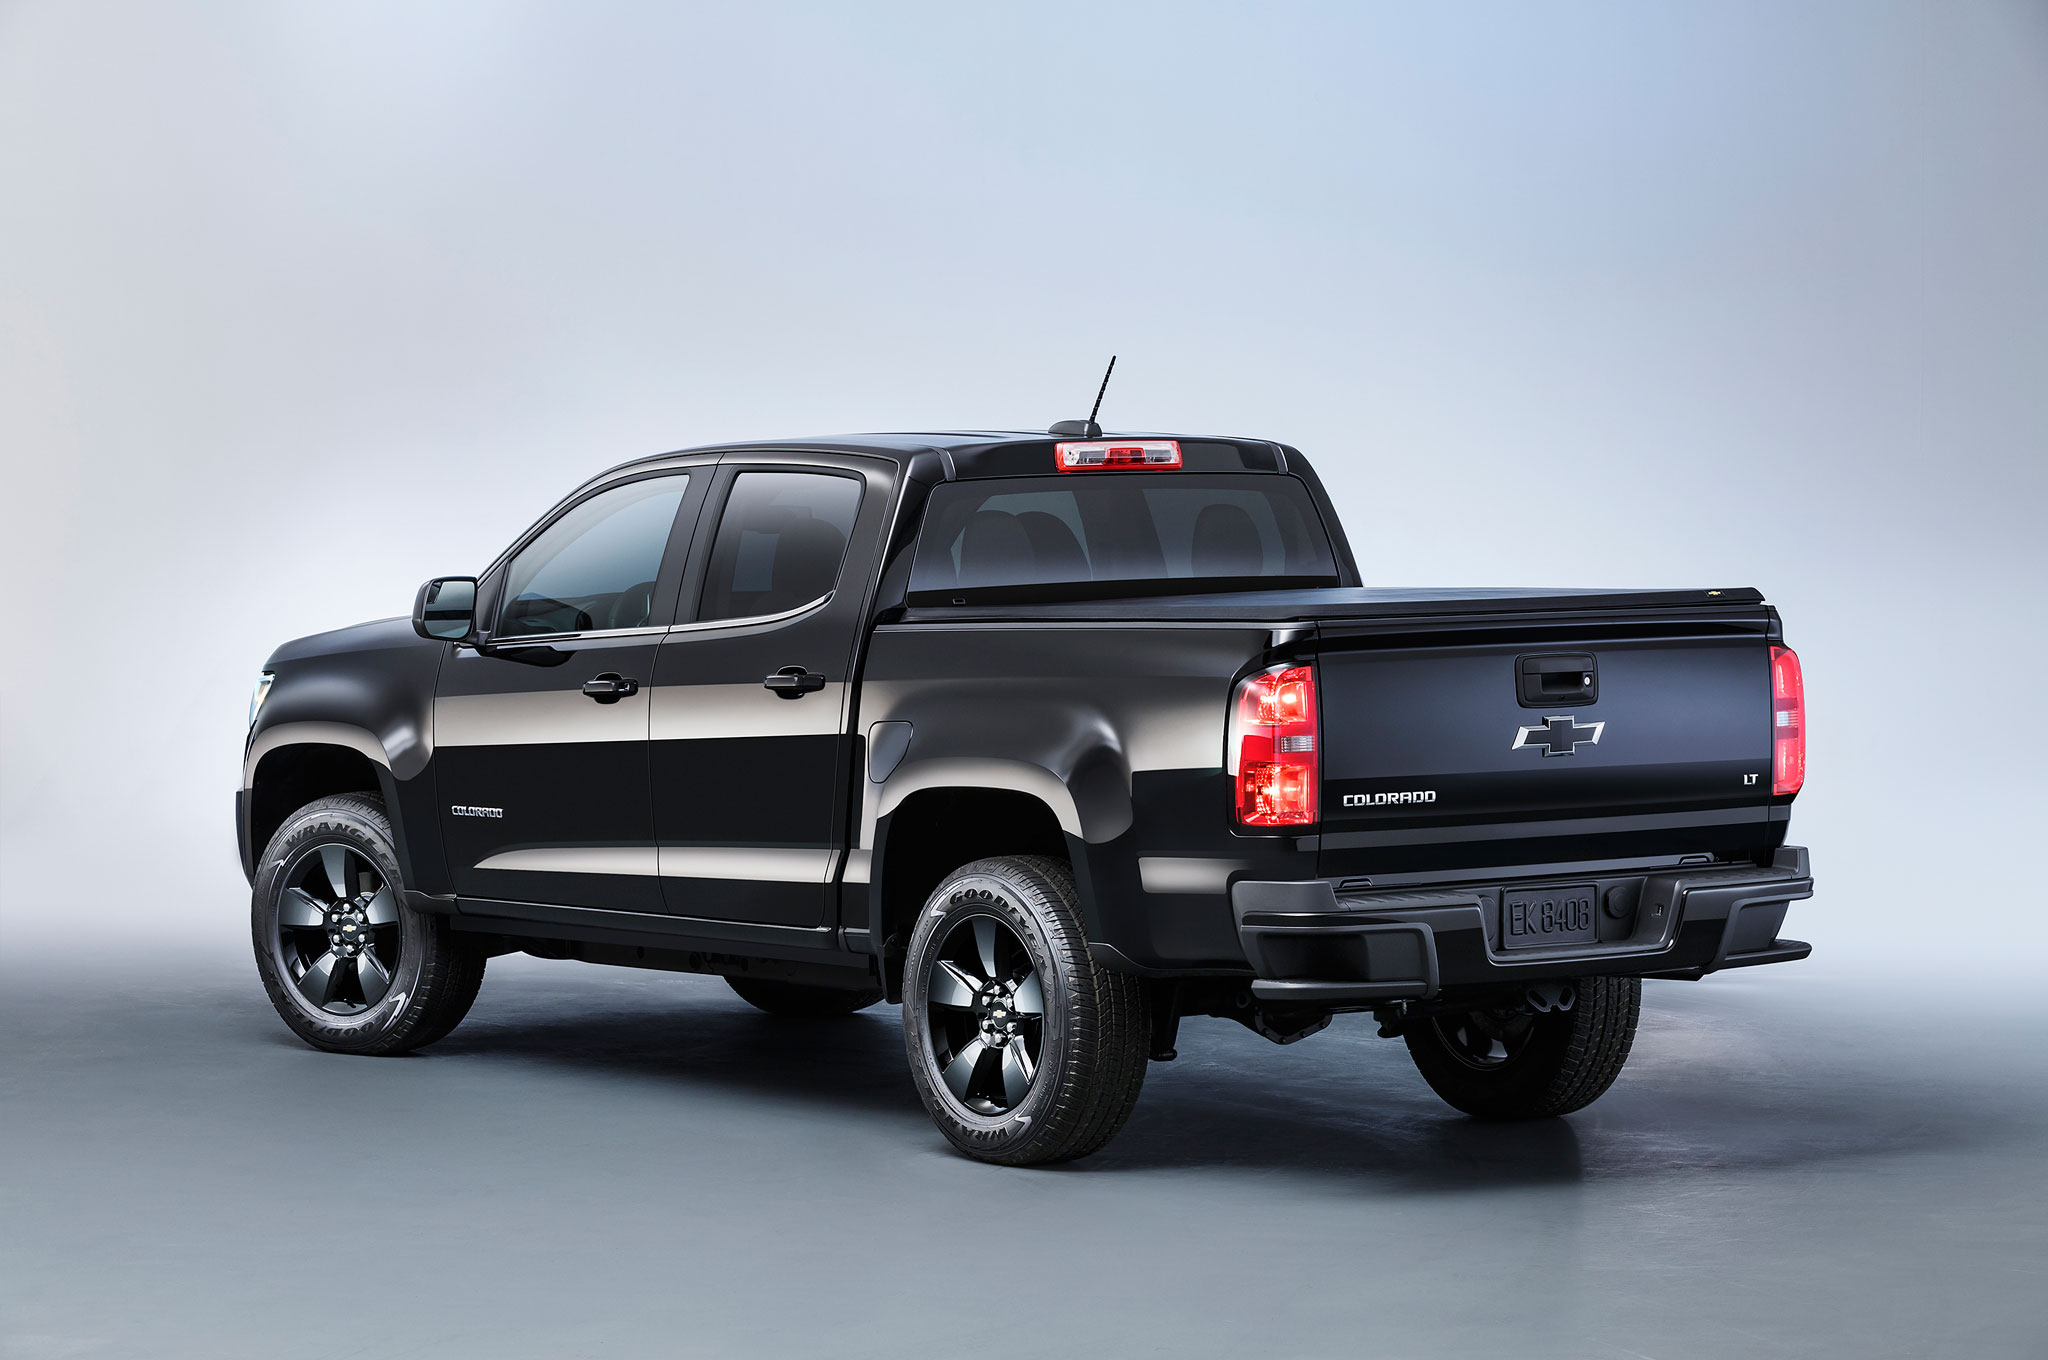 2017 chevrolet colorado shoreline edition aims for west coast buyers show more swarovskicordoba Image collections